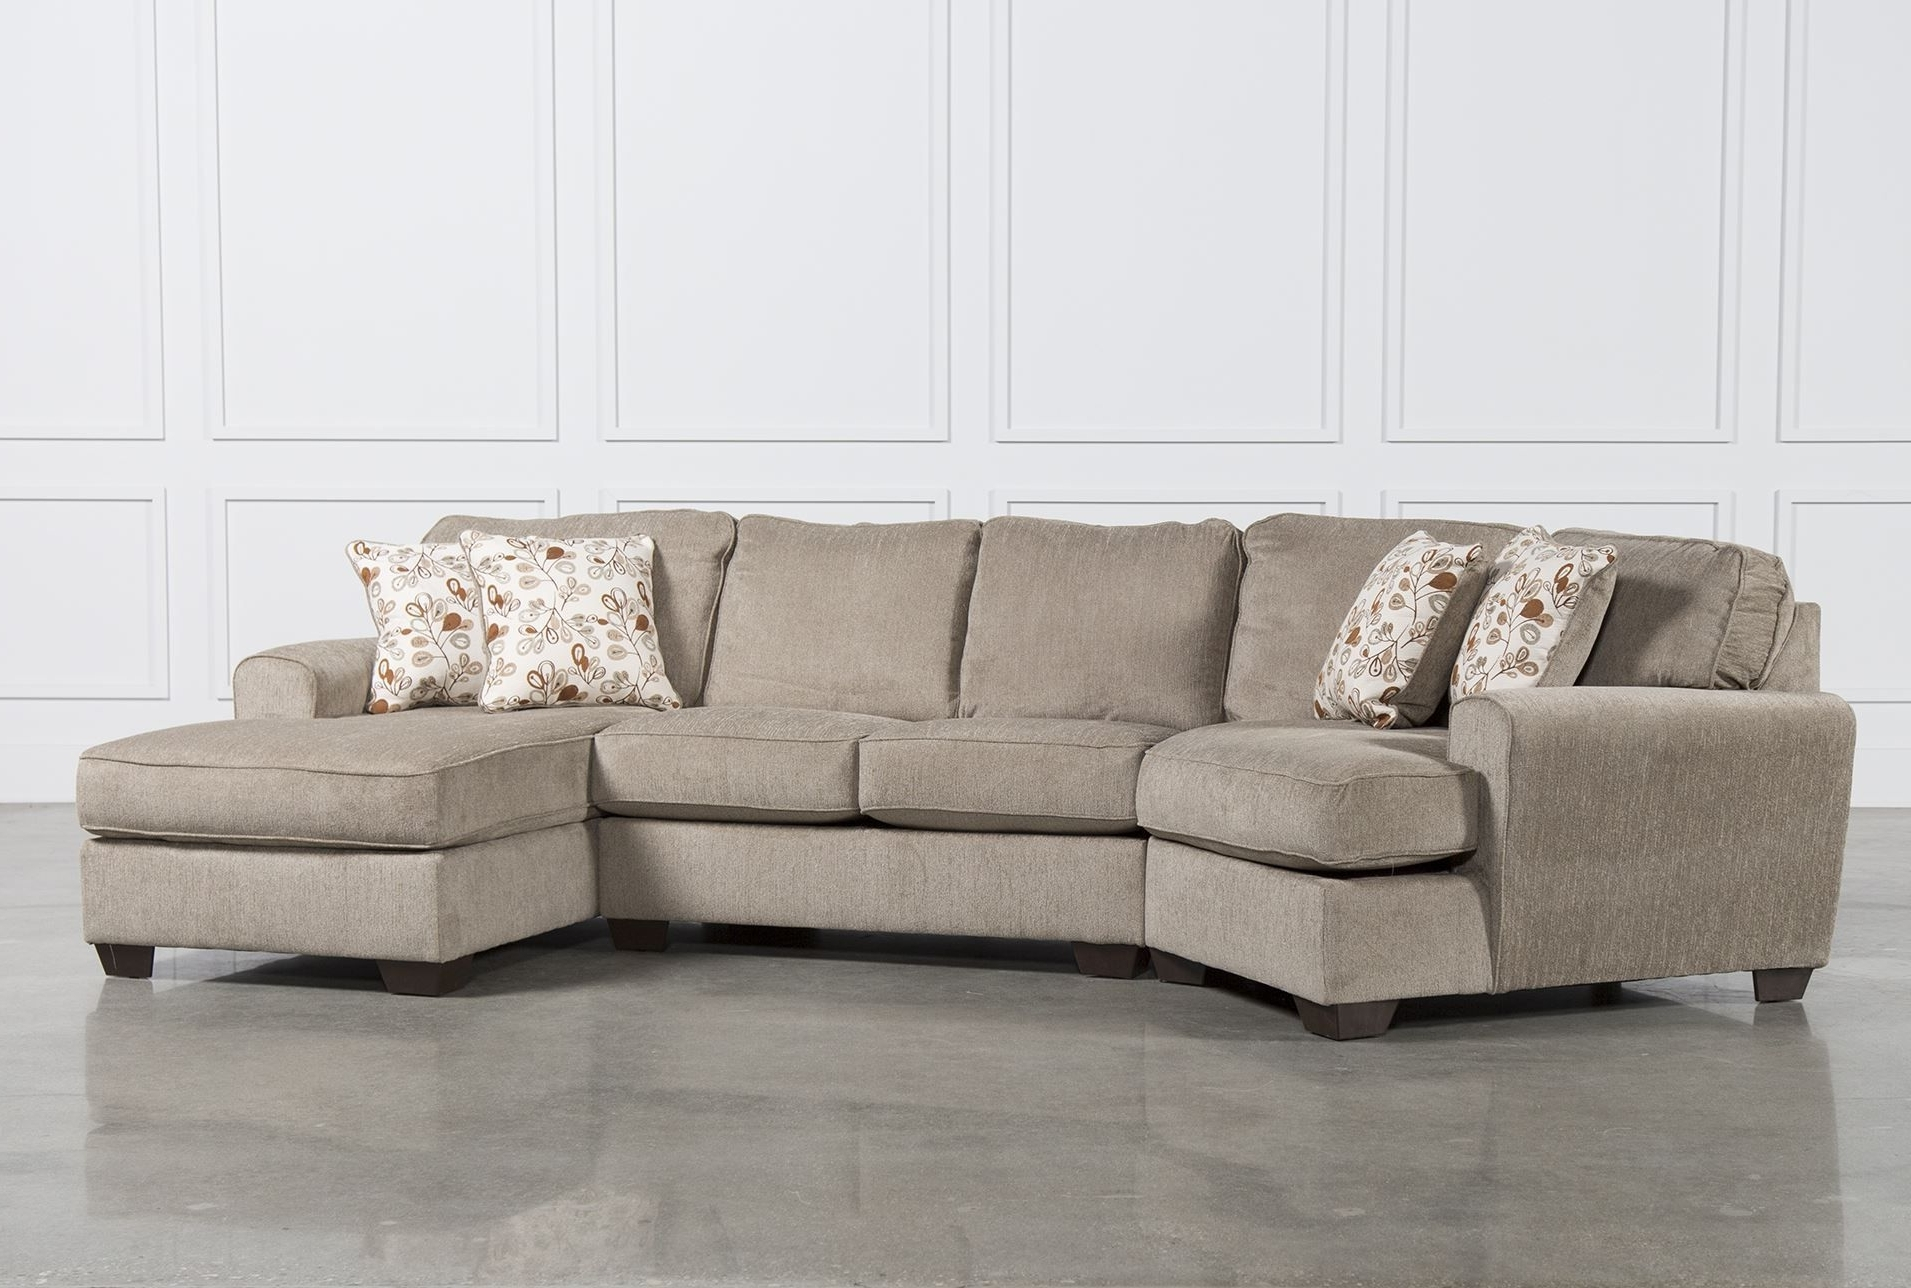 Cuddler Sectional Sofas Within Most Recent Patola Park 3 Piece Cuddler Sectional W/raf Corner Chaise (View 6 of 15)